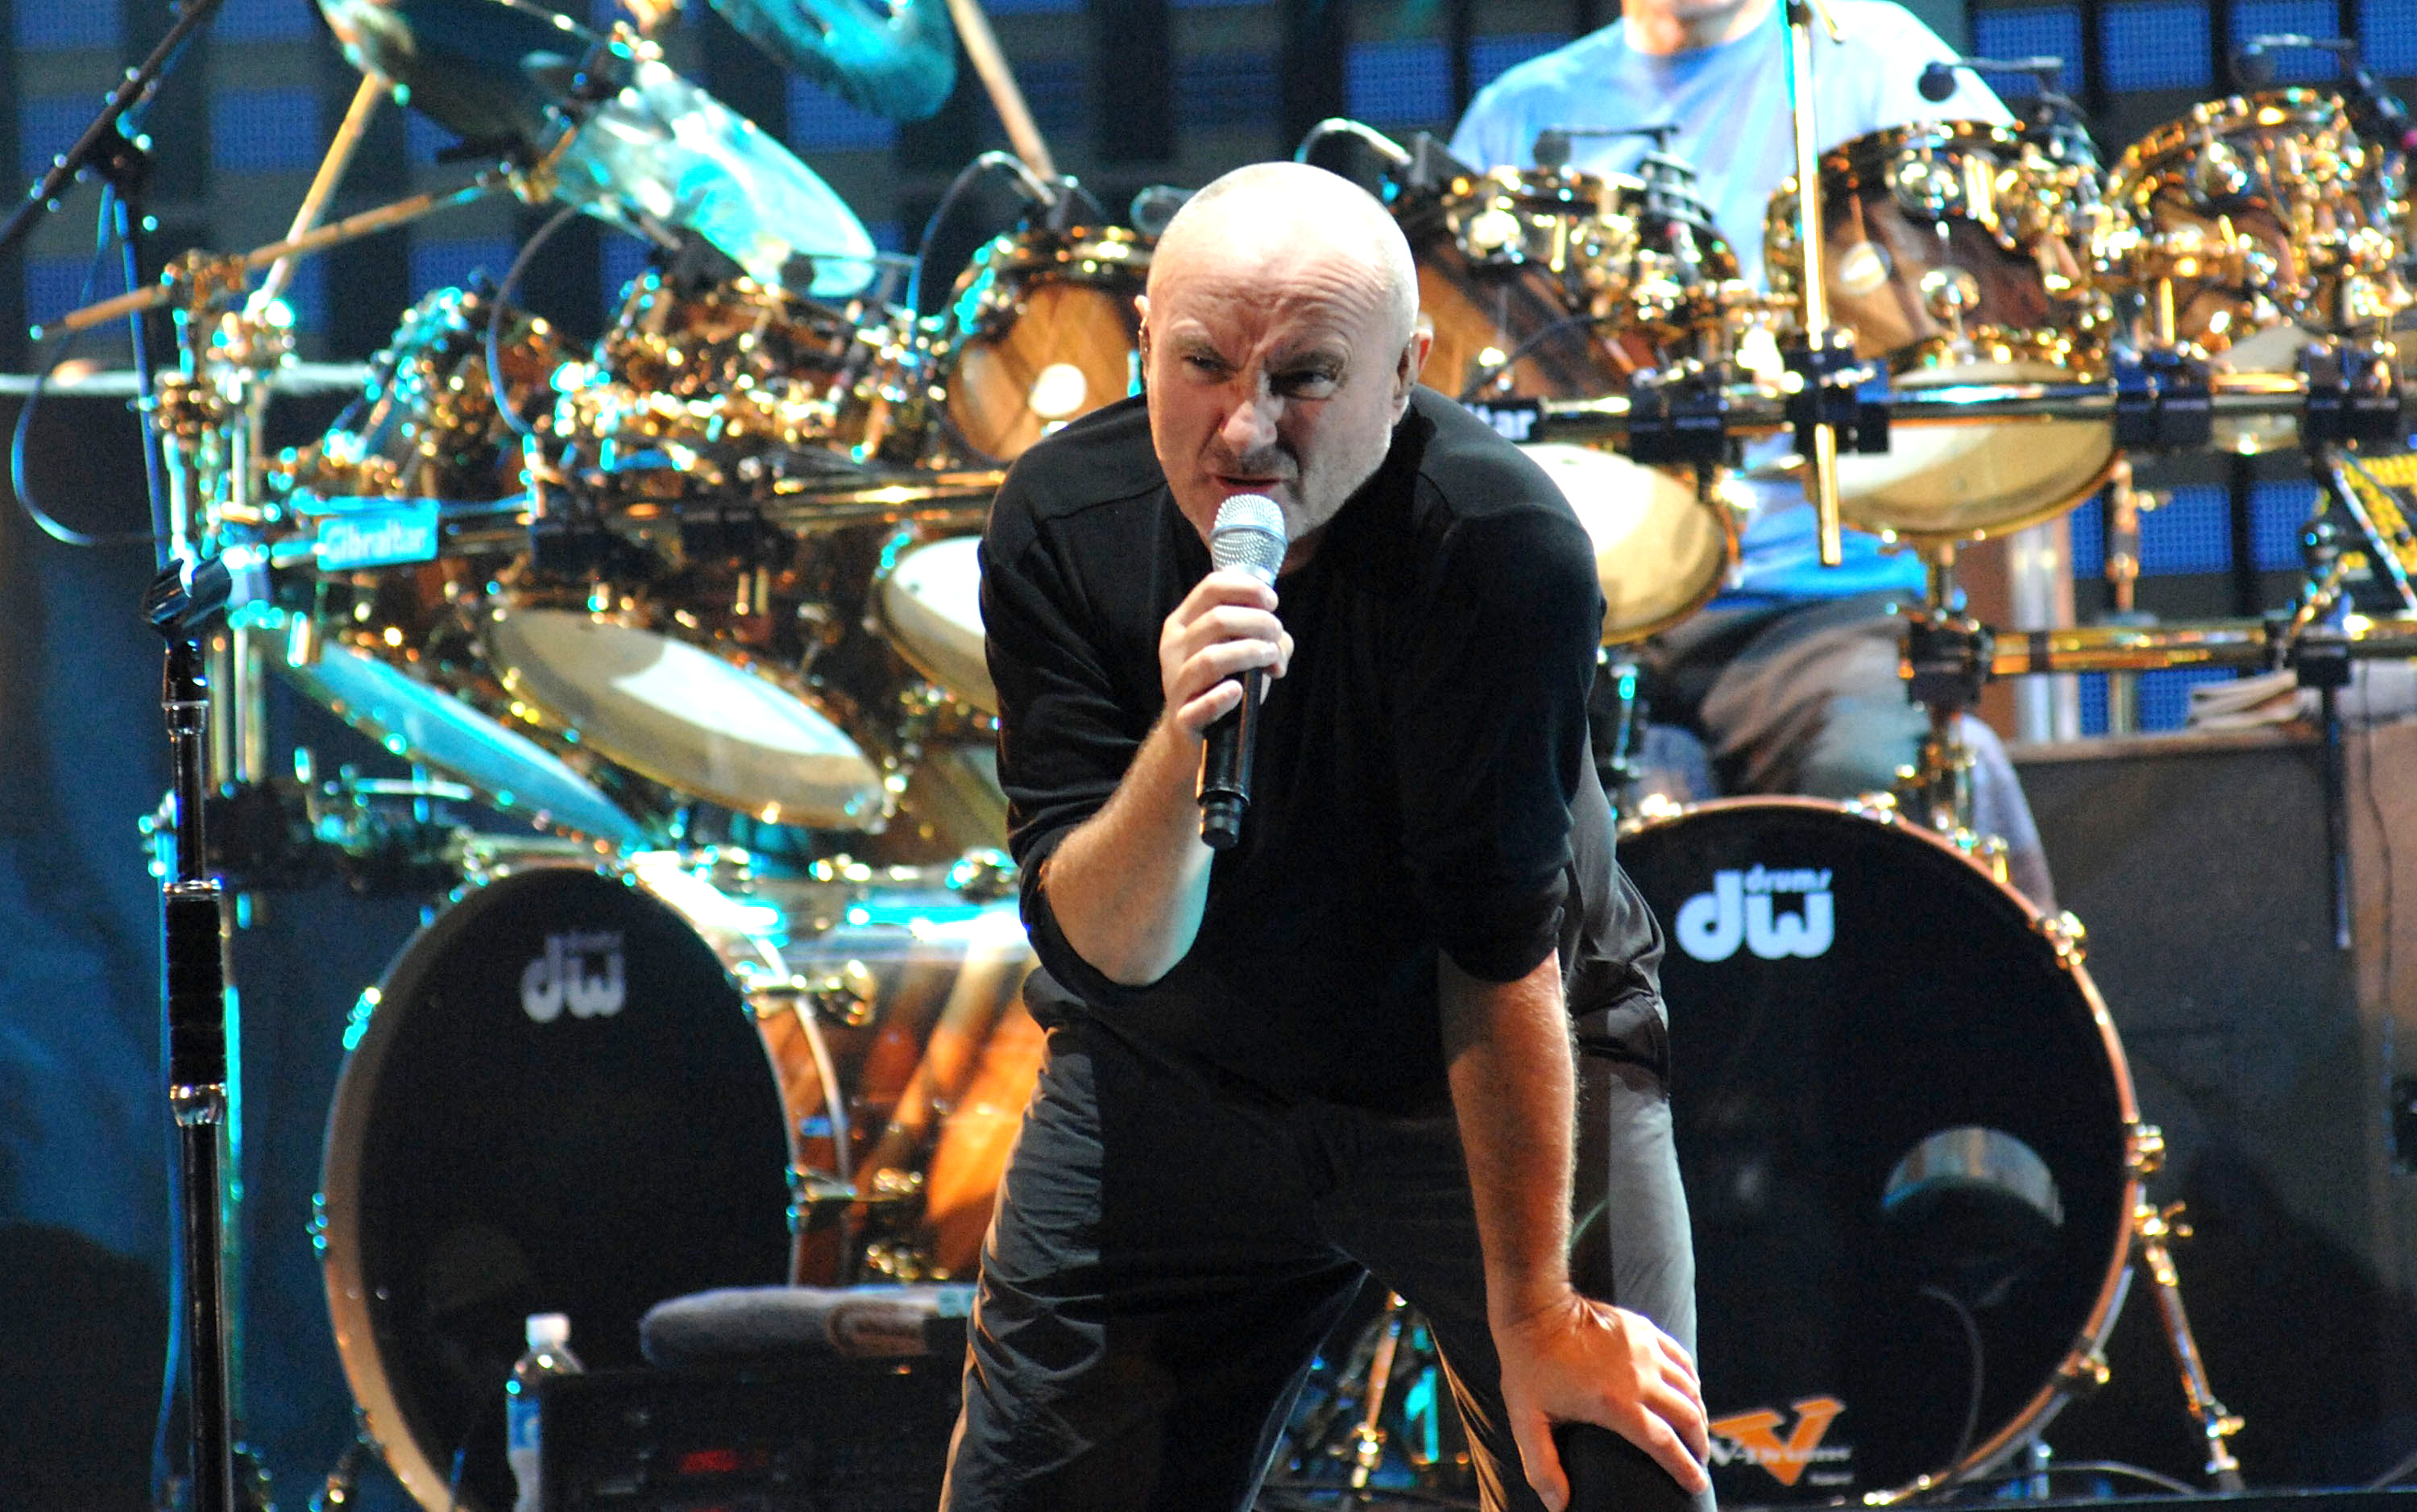 Genesis Wrap Up Reunion Tour With Peter Gabriel-Era Classic Song – Rolling Stone